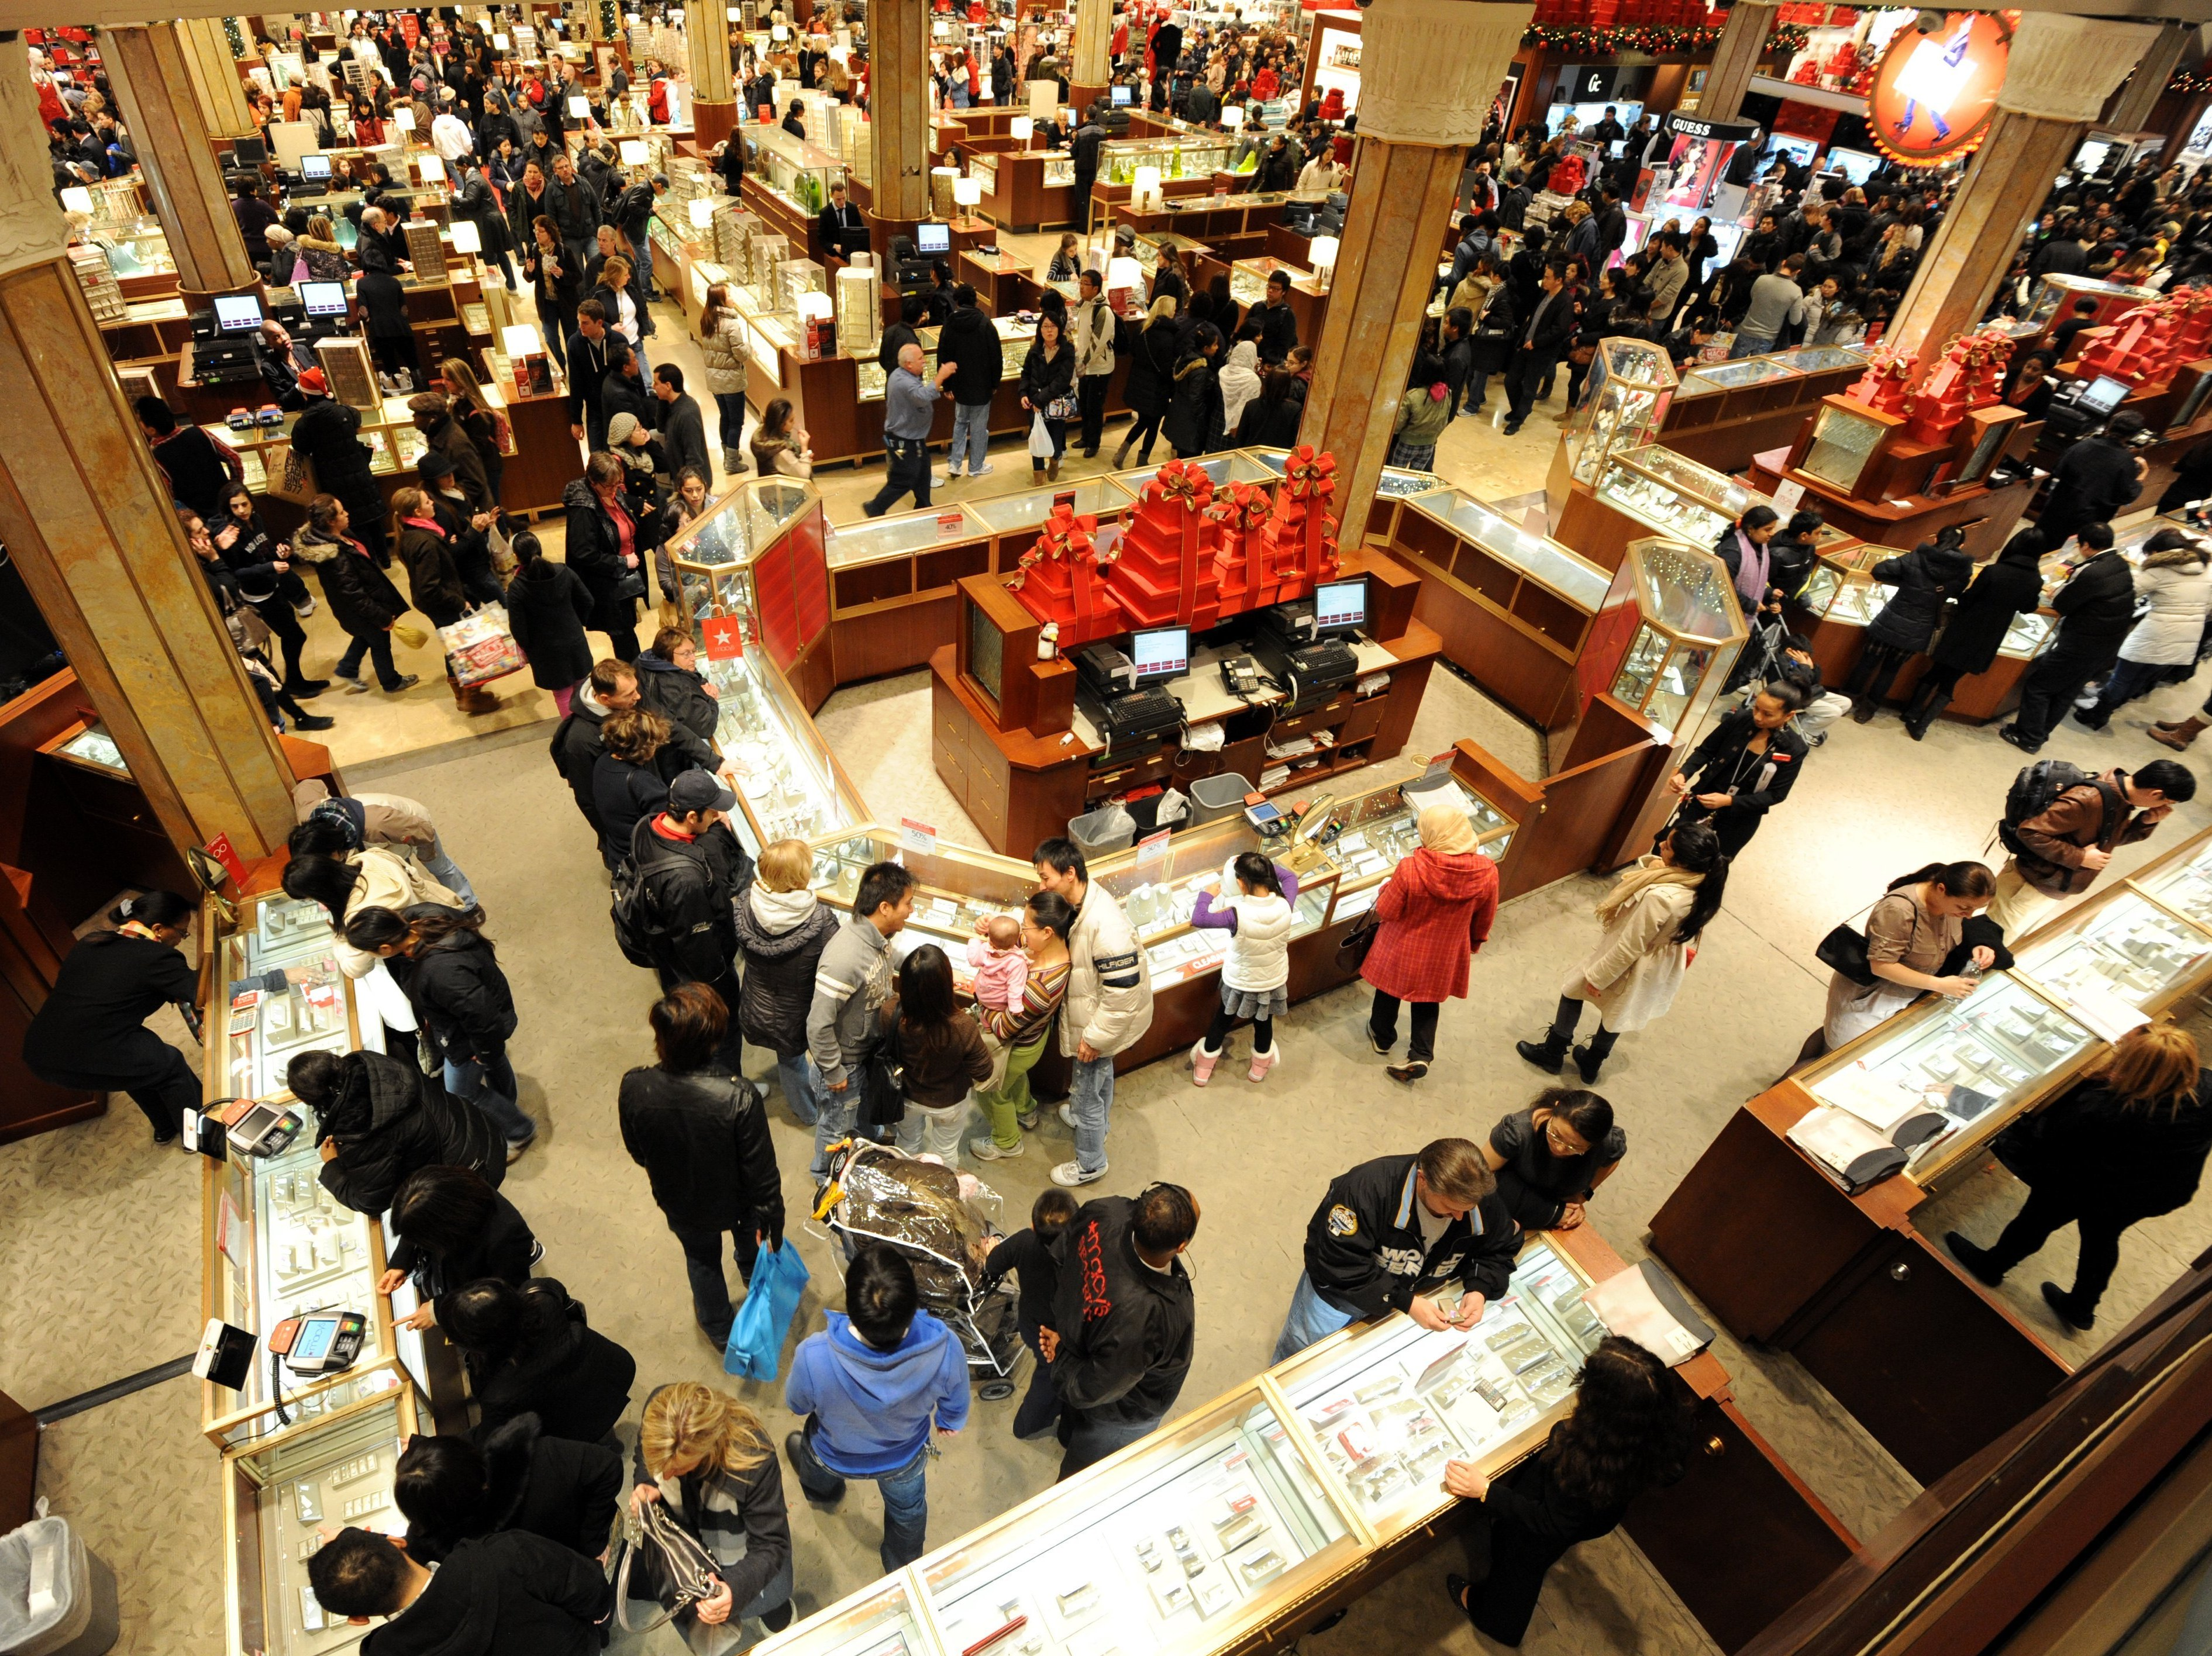 Advantages and disadvanyages of department stores